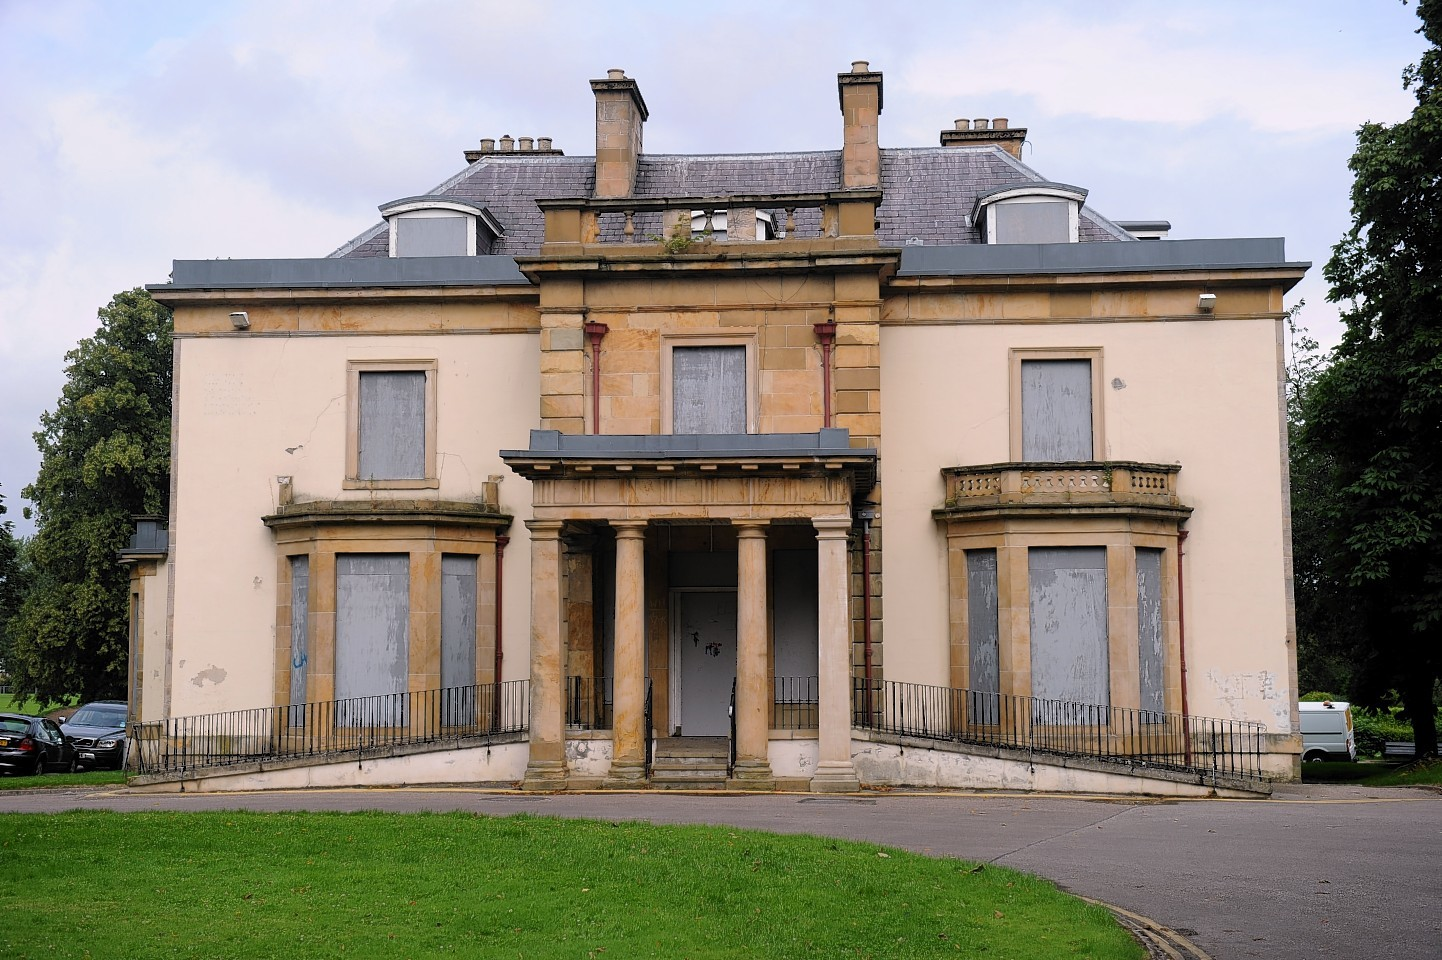 Grant Lodge, Cooper park, Inverness